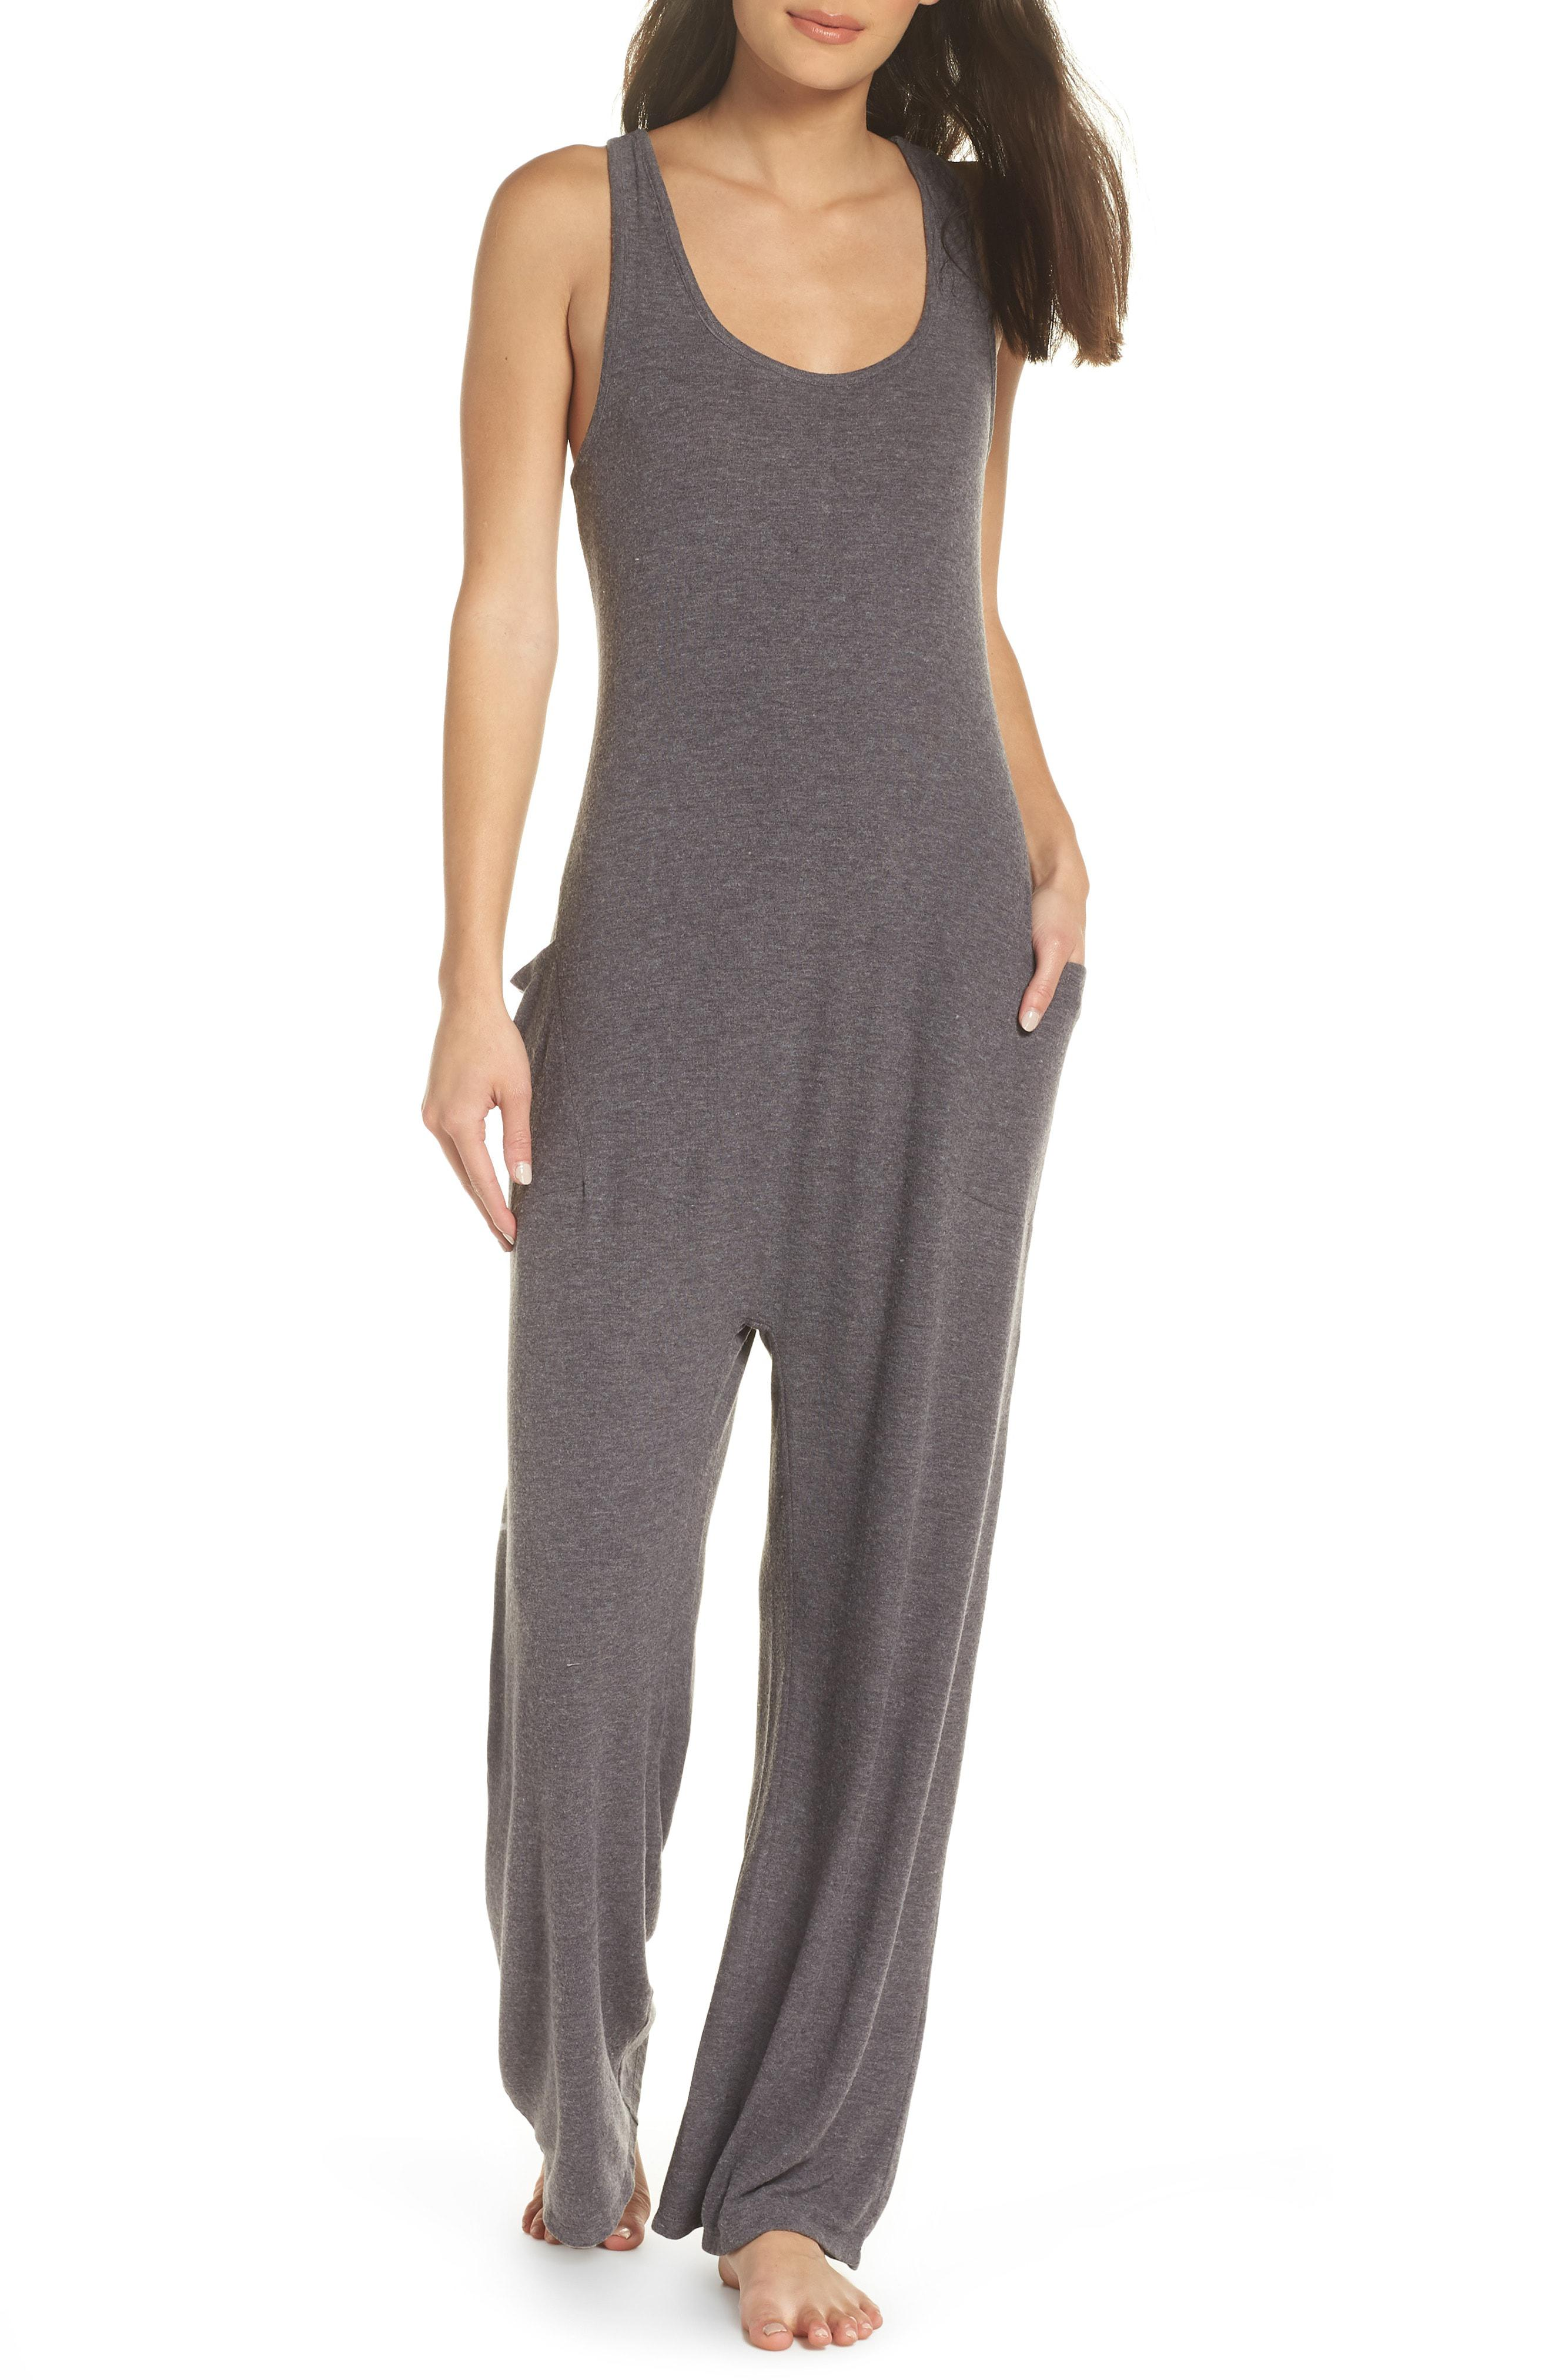 2322824ac20 Lyst - Honeydew Intimates Luxe Lounge Jumpsuit in Gray